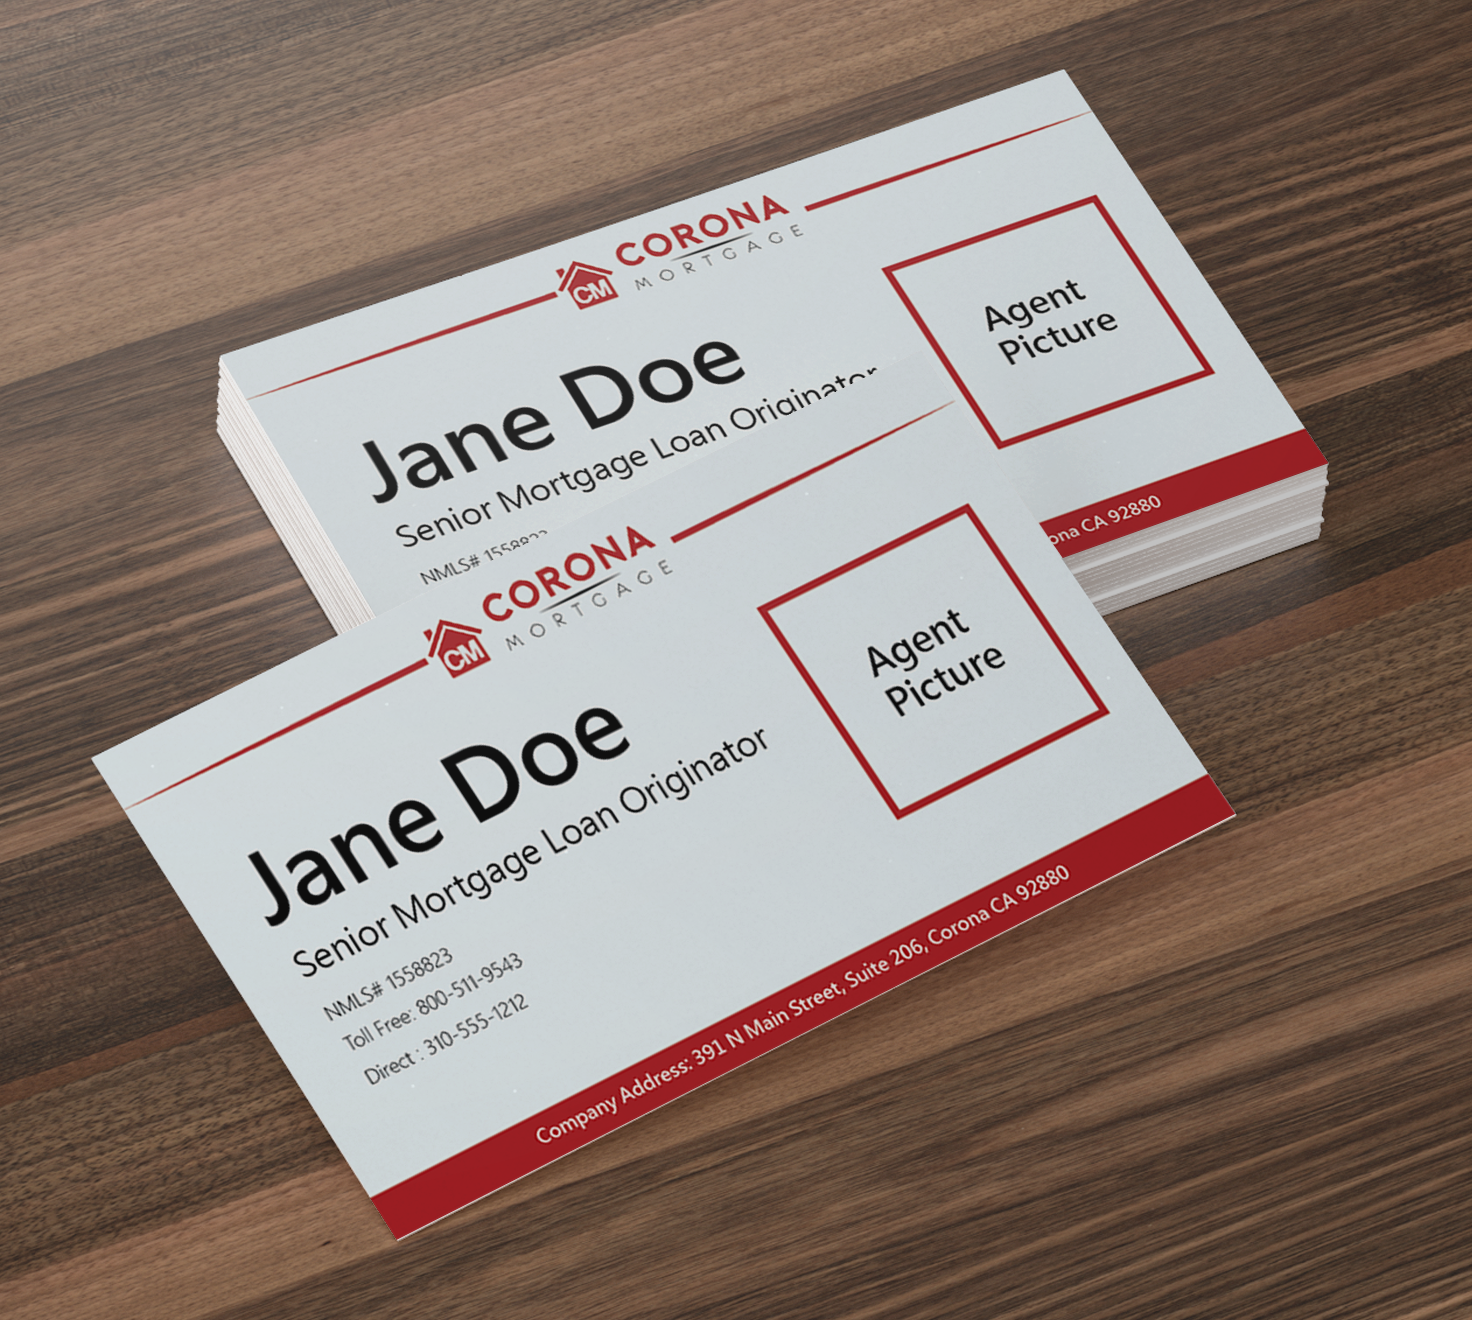 Modern upmarket mortgage lender business card design for a company business card design by mark cheng for this project design 17321933 reheart Choice Image